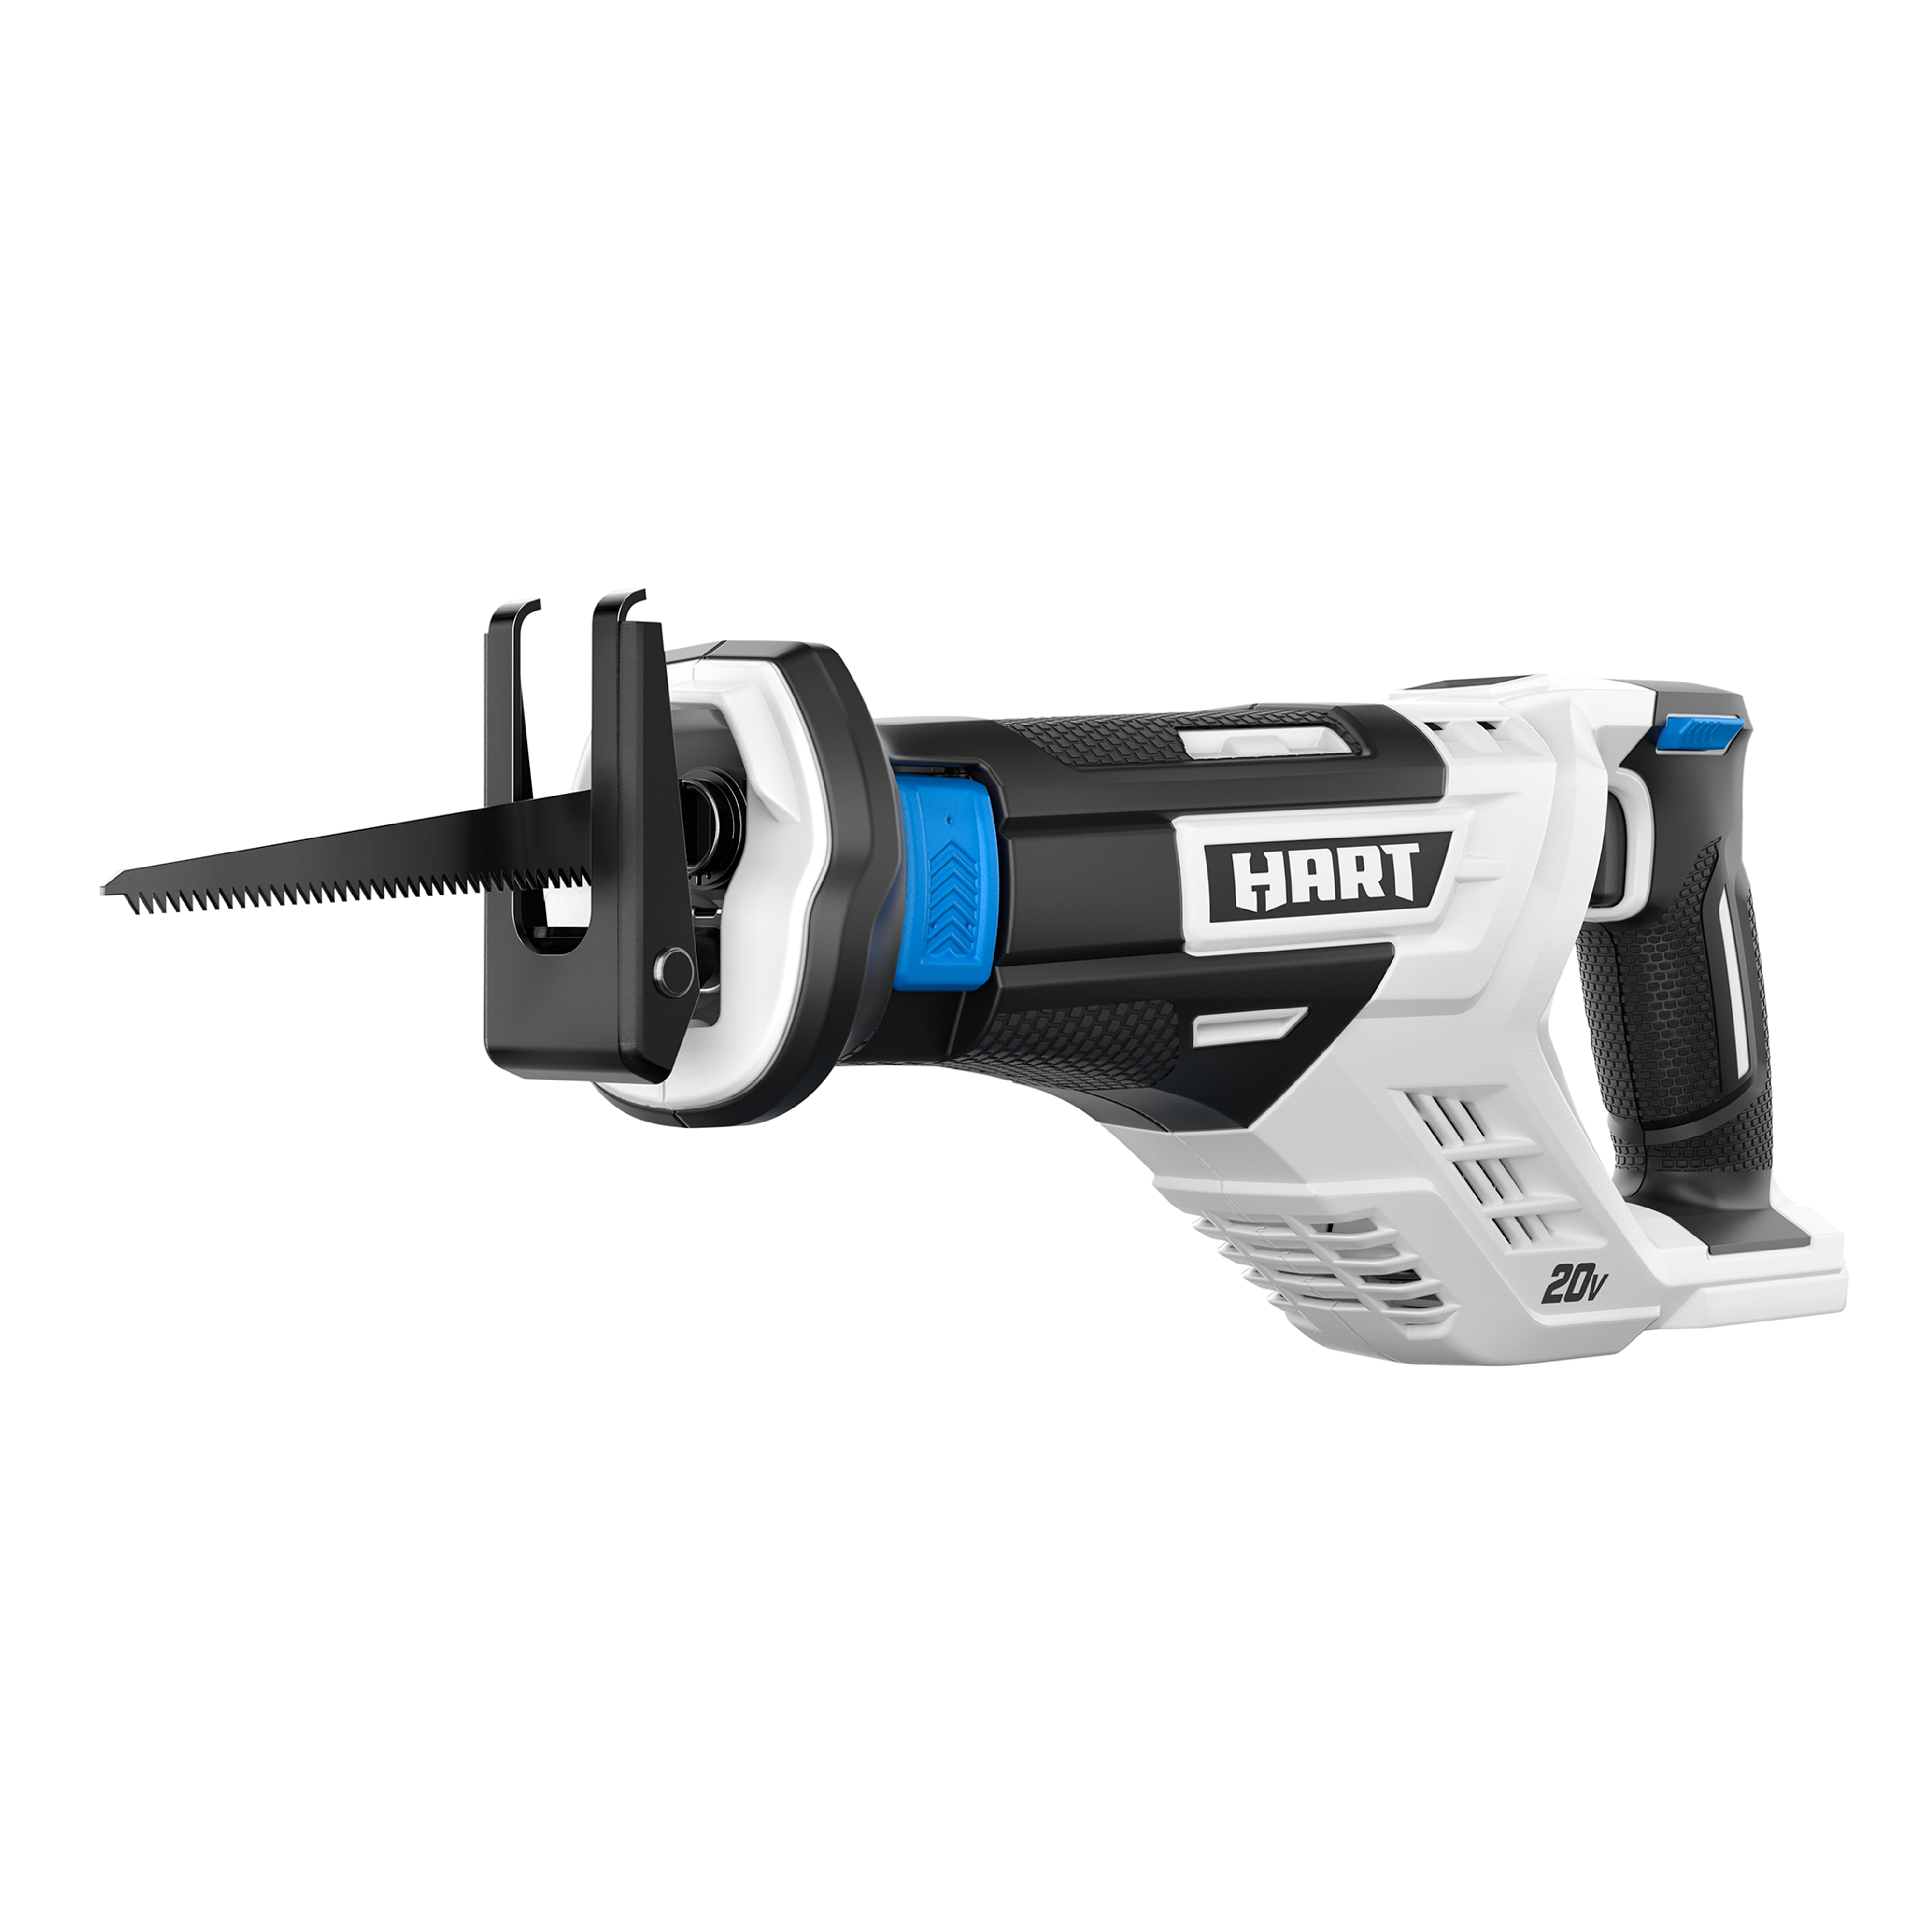 HART 20V Cordless Reciprocating Saw (Battery Not Included) HPRS01